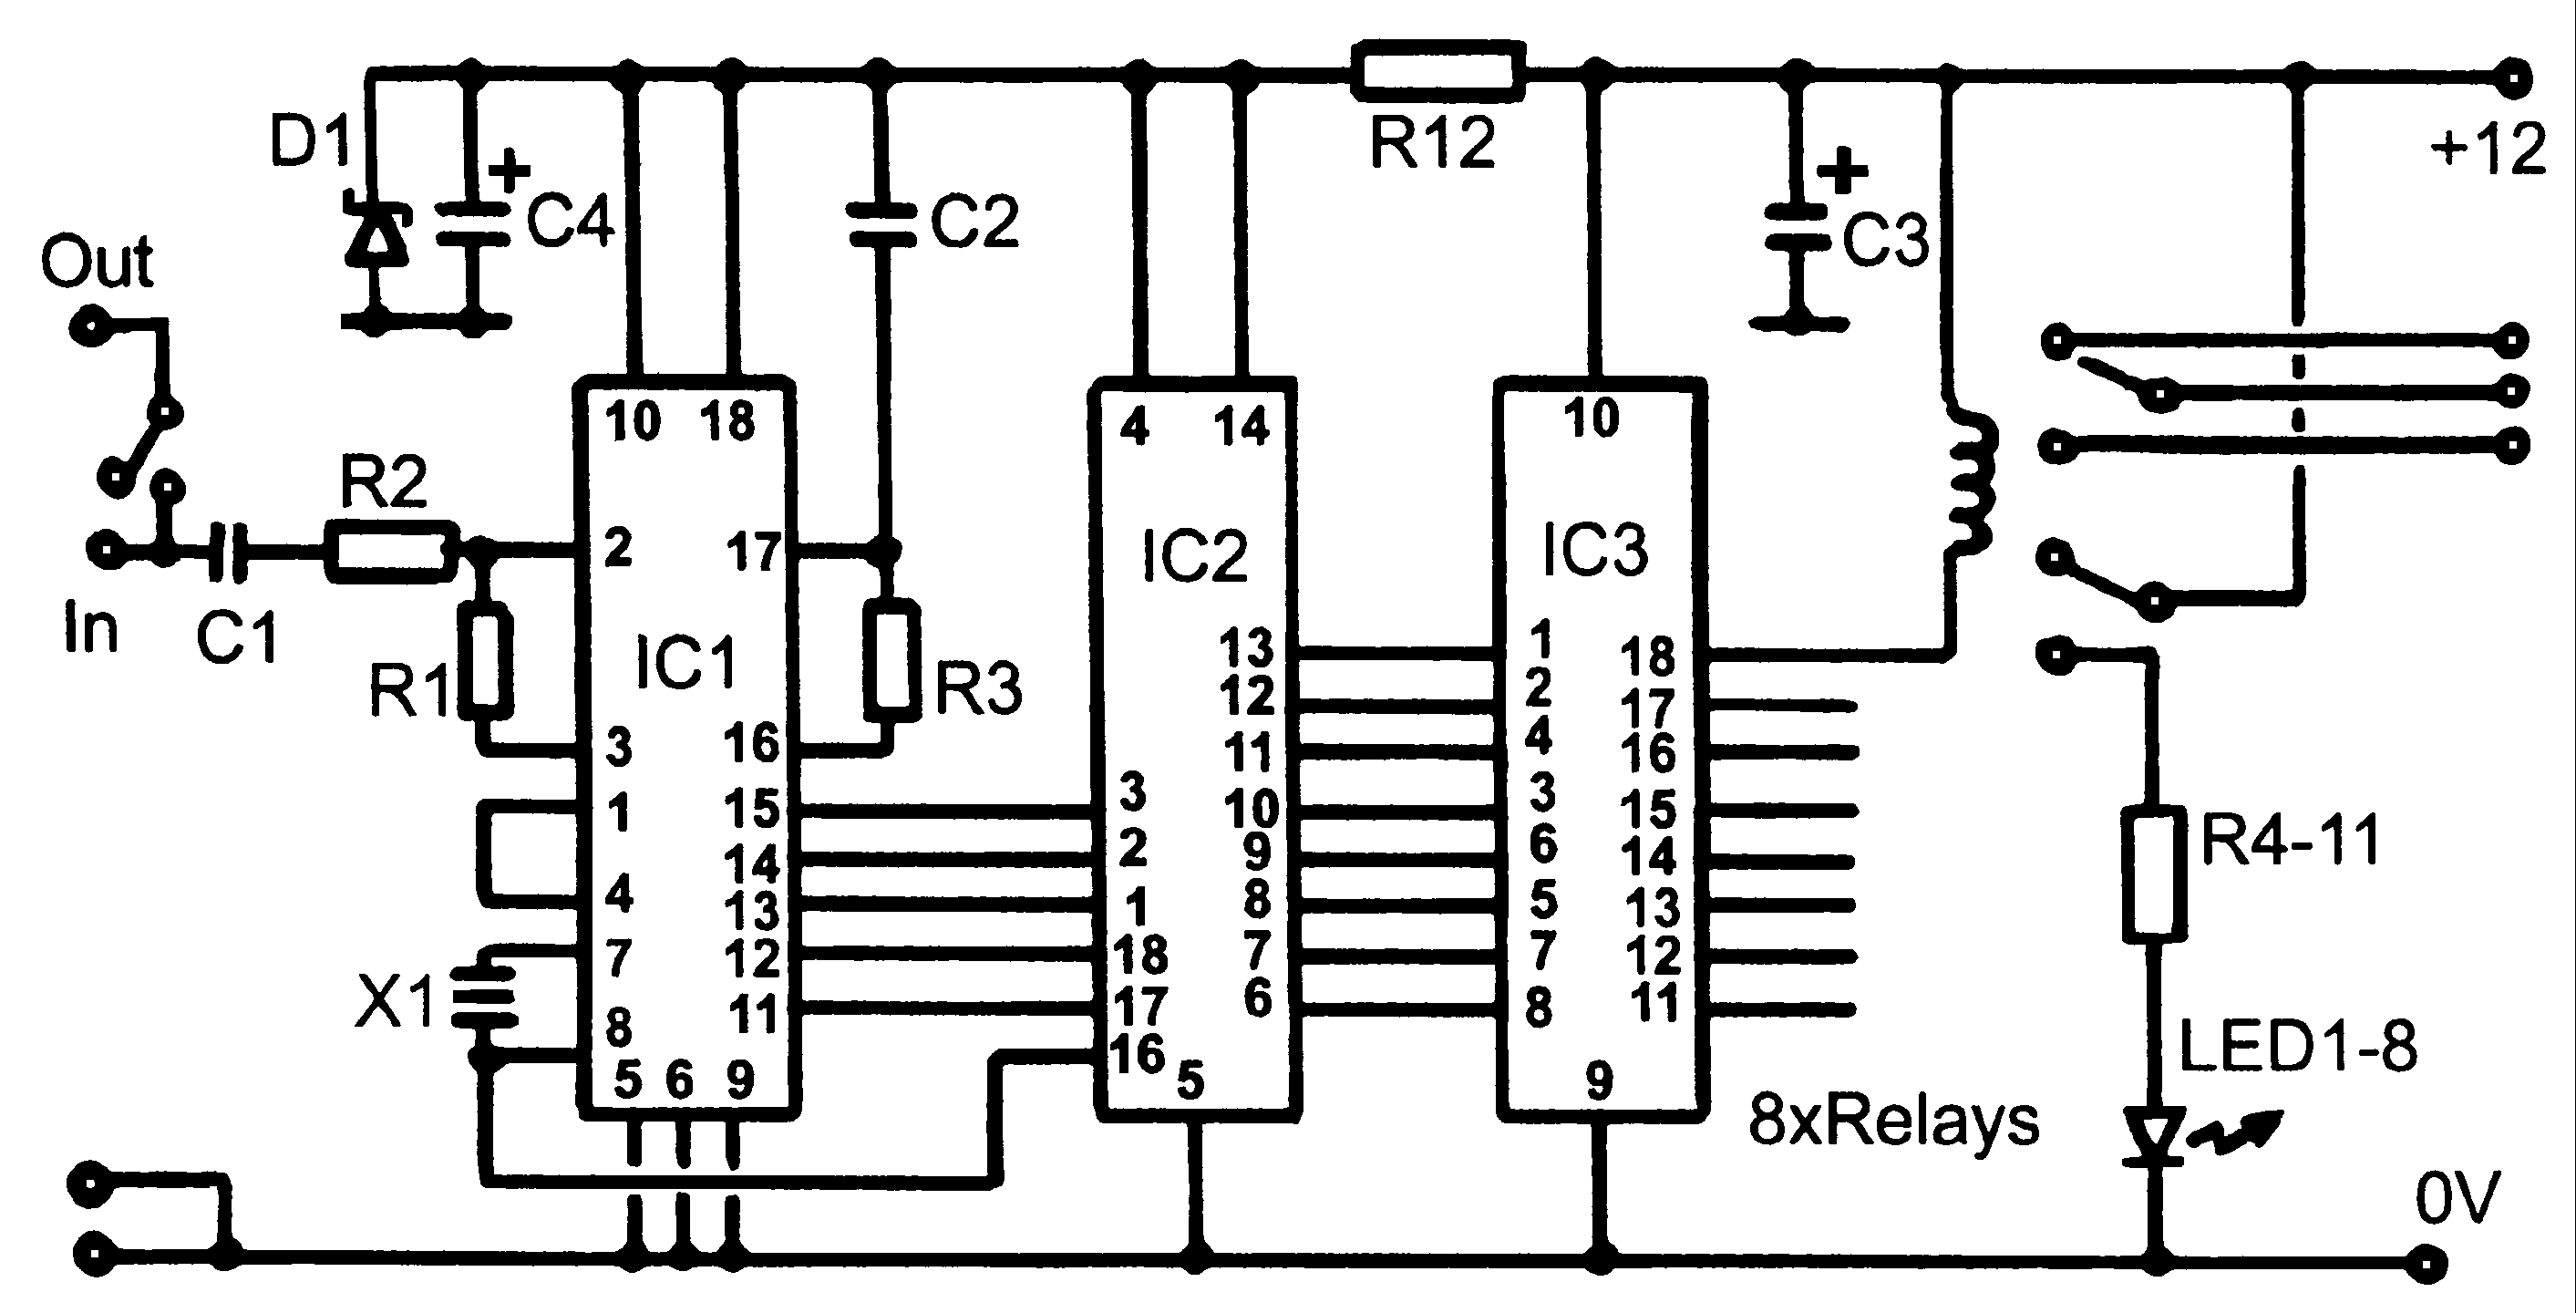 Dtmf Circuit Telephone Circuits Relay Working Pdf Control